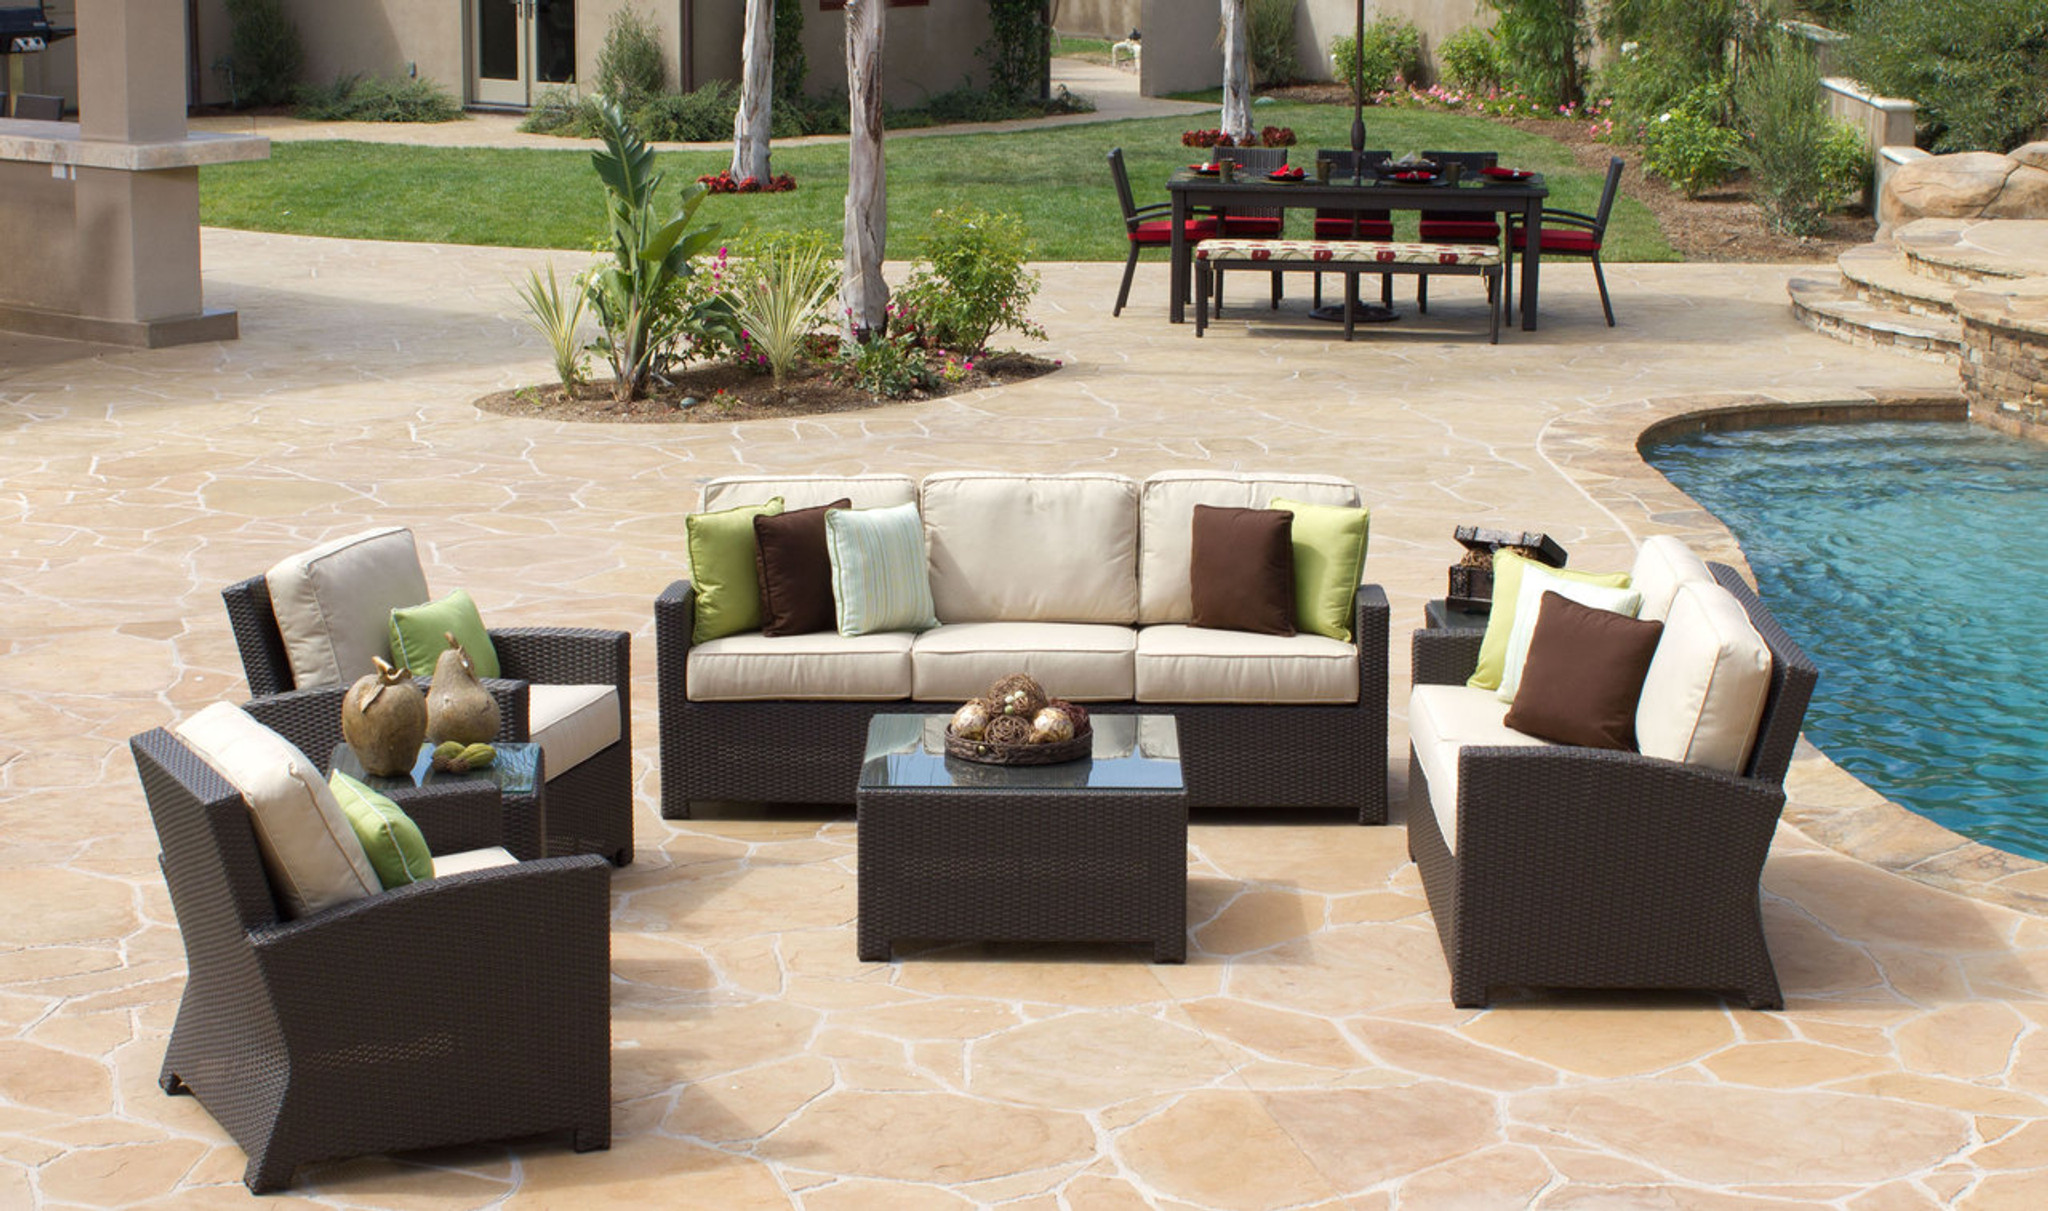 Outdoor_Furniture Pacific_Patio_Furniture North_Cape_International Cabo Img1  ...